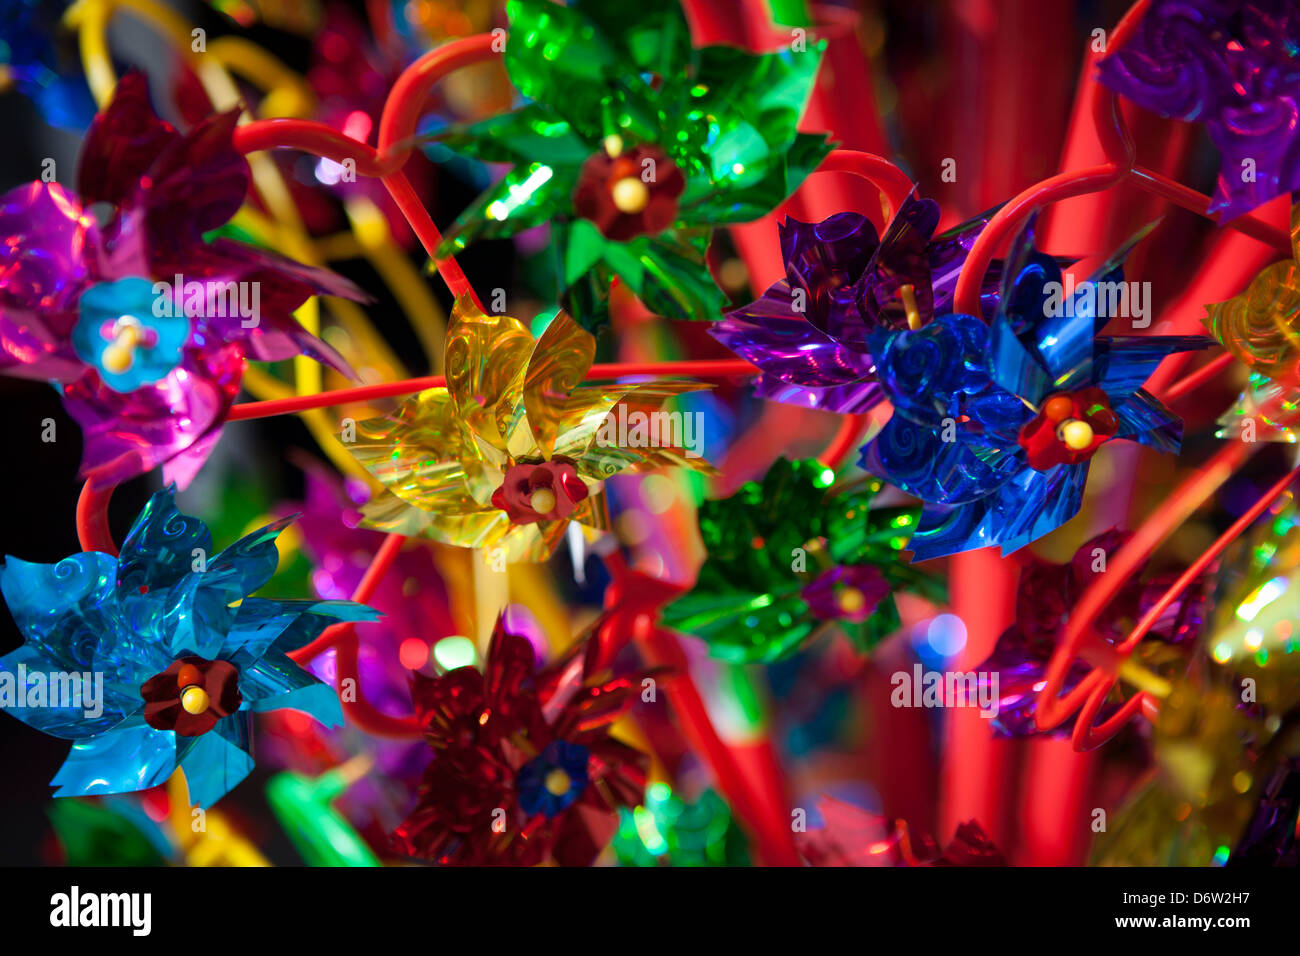 Bright metallic windmill toys at the seaside. - Stock Image